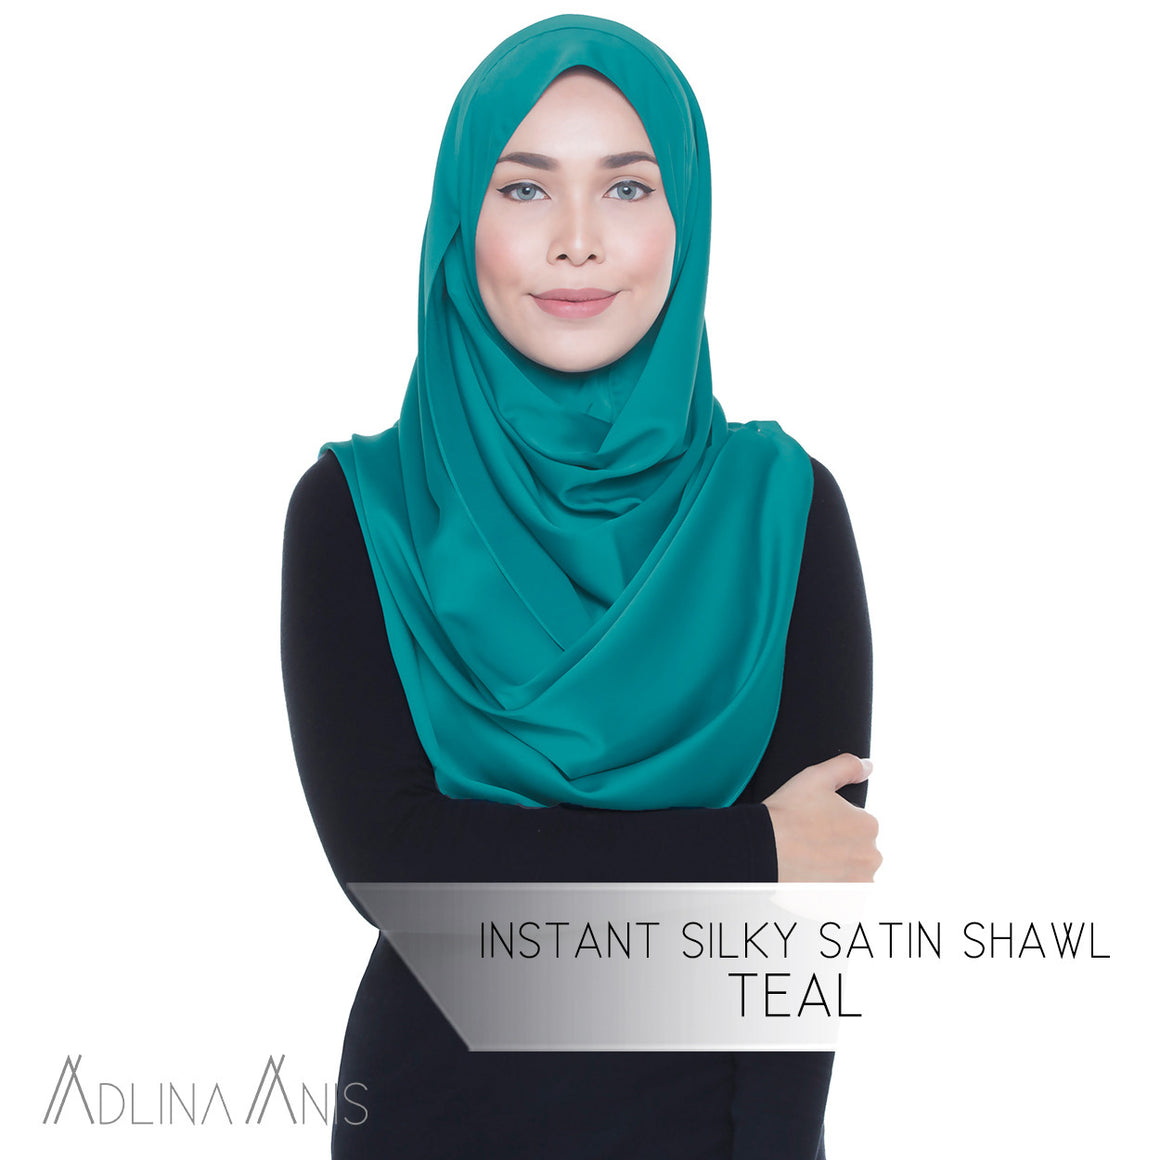 Instant Silky Satin Shawl - Teal